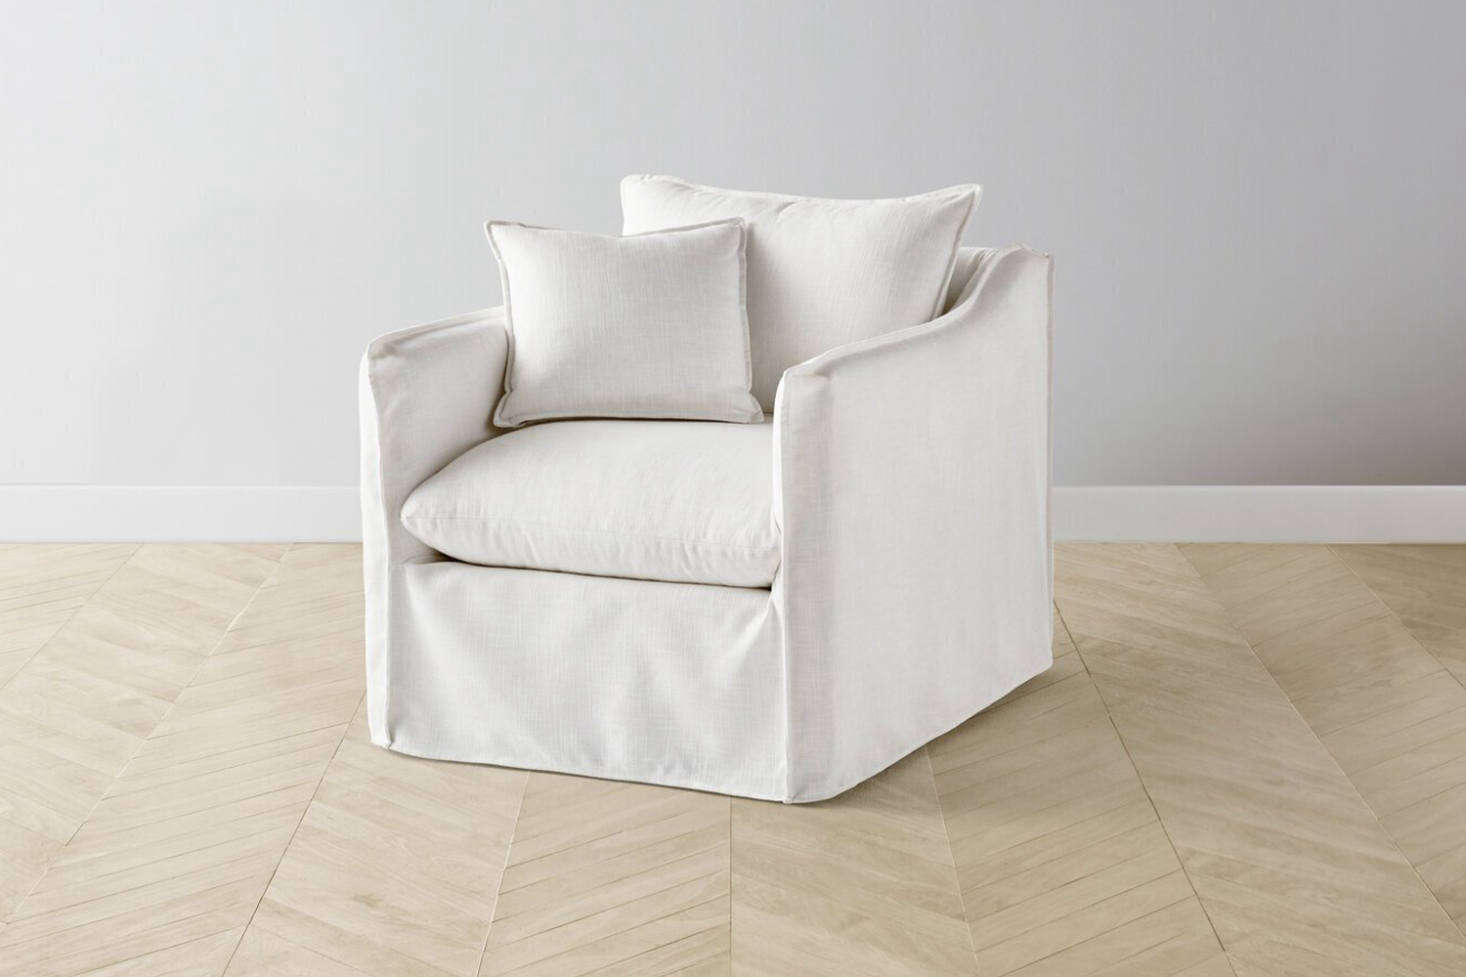 From new company Maiden Home, the Dune Chair is $data-src=